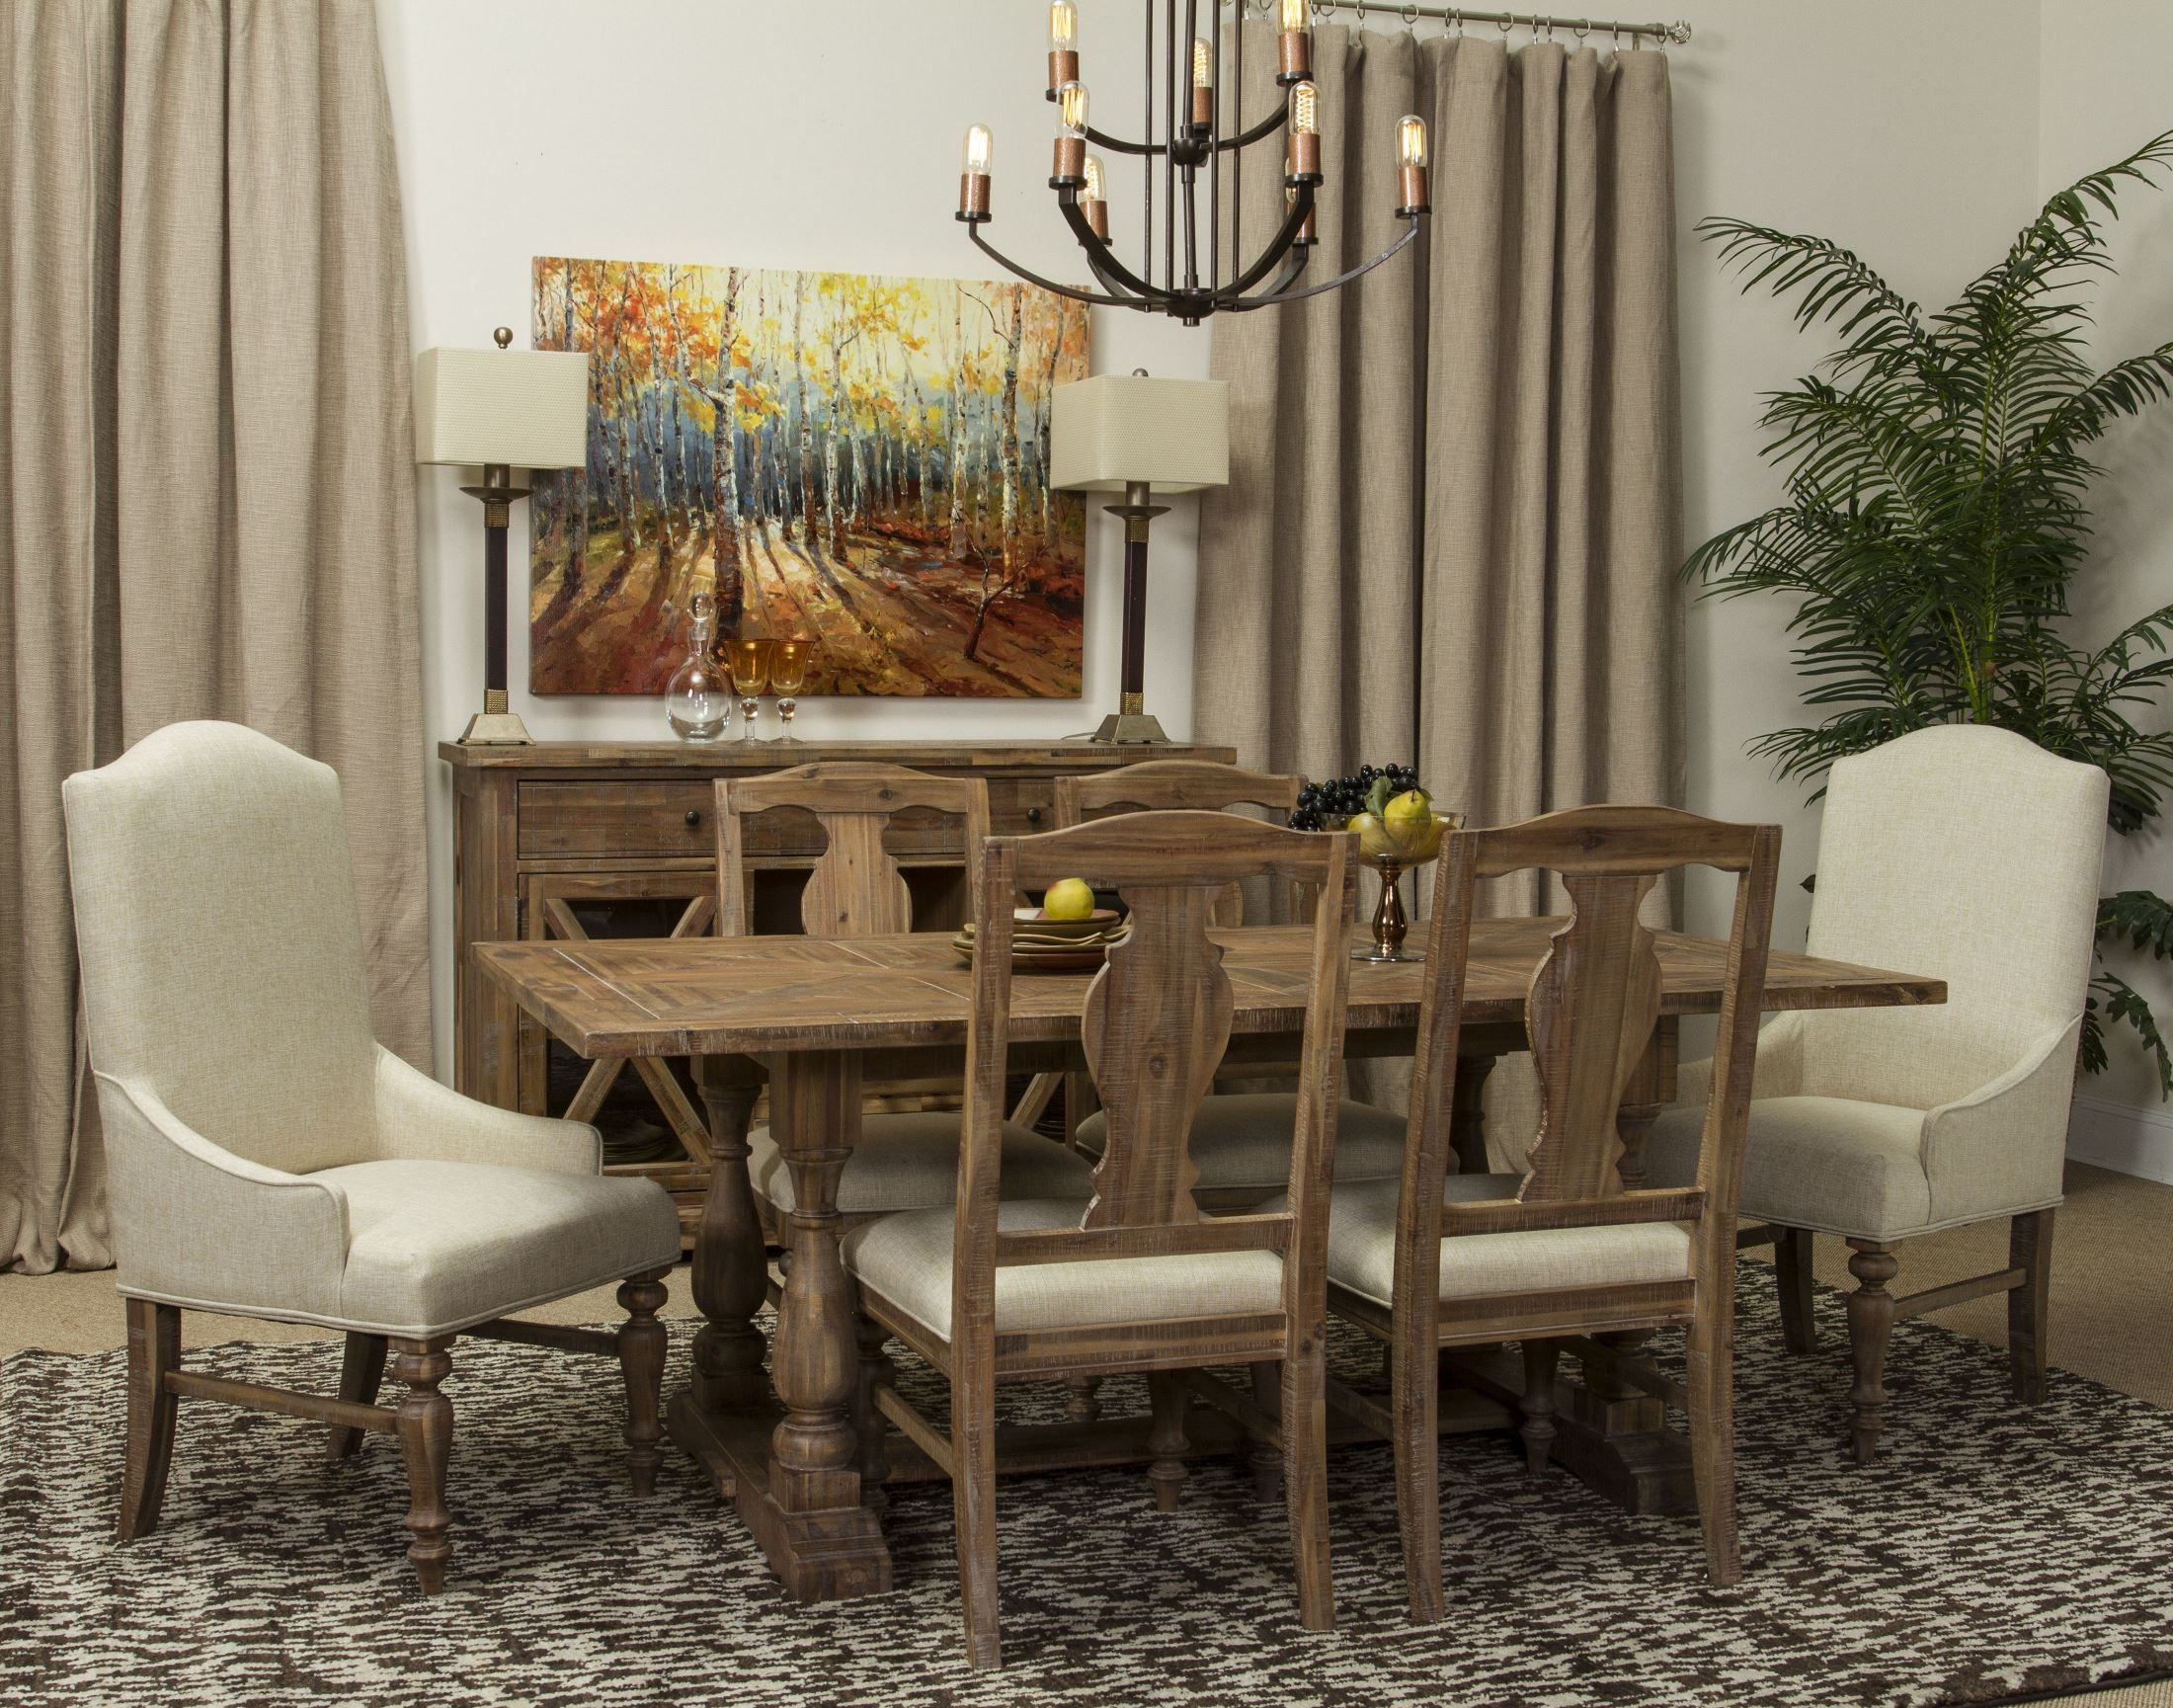 Patchwork boardwalk sideboard s4181 09 fairmont designs for Fairmont designs dining room